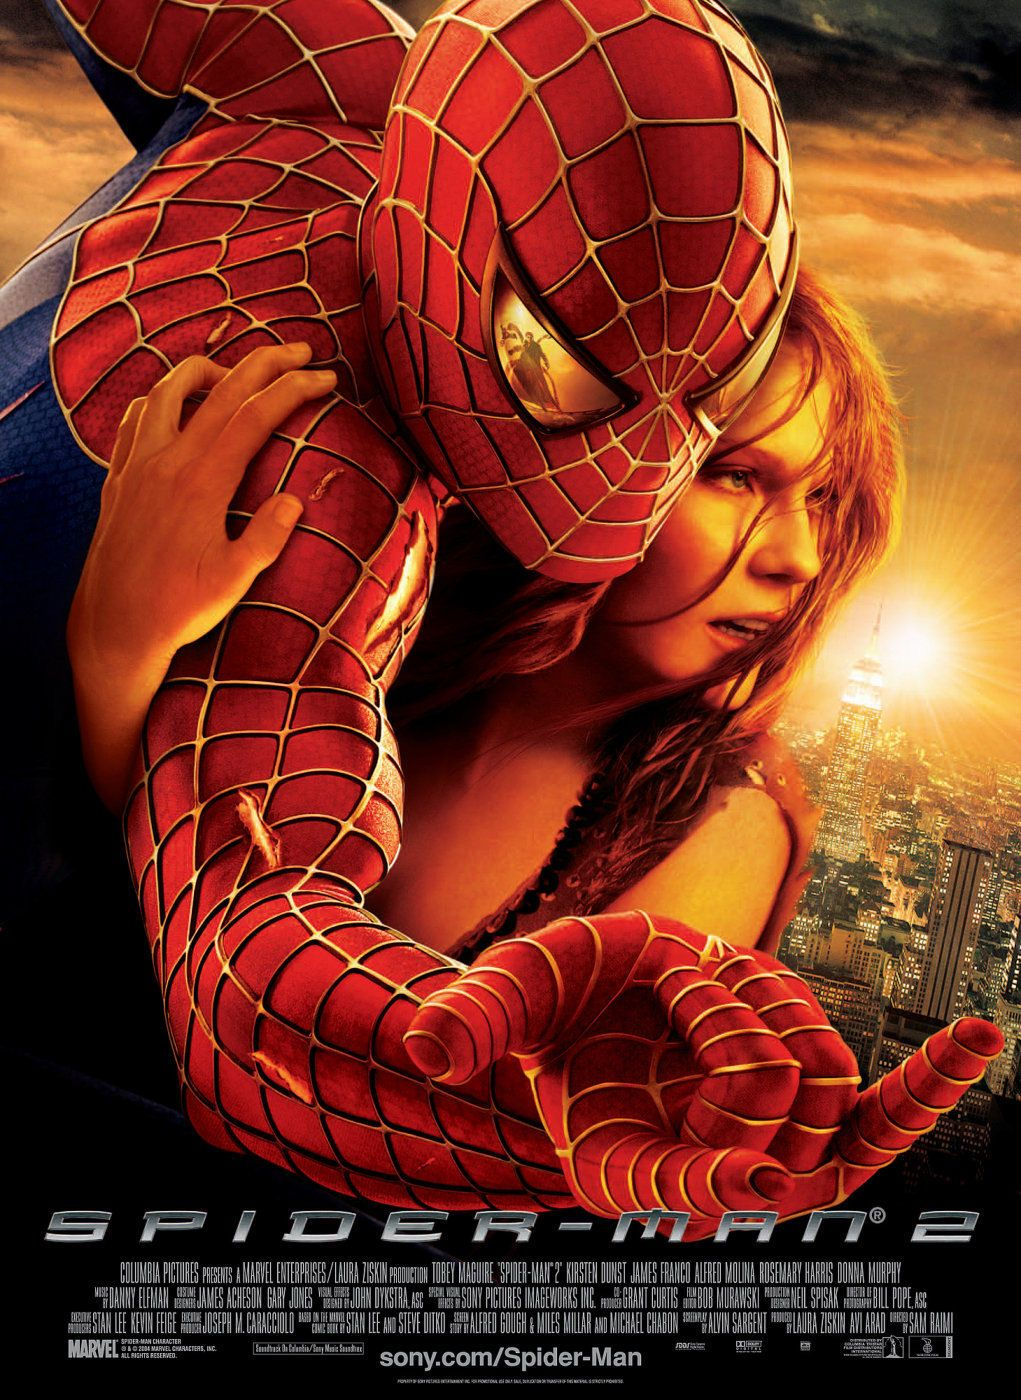 Spider-Man 2 (2004)  Dir: Sam Raimi, w/Tobey Maguire, Kirsten Dunst, Alfred Molina & Rosemary Harris. One of the scenes I worked was when Aunt May is thrown off the skyscraper, as Spiderman  battle Doc Ock... & Spidey saves her. After one take, Sam Rami told everyone to do what I was doing. You see, Spiderman was supposed to Swing away & well as he was, I had mentally become my 8 year old fanboy self & Spiderman 'was' standing in front of me well being Spiderman…this wasn't acting on my…